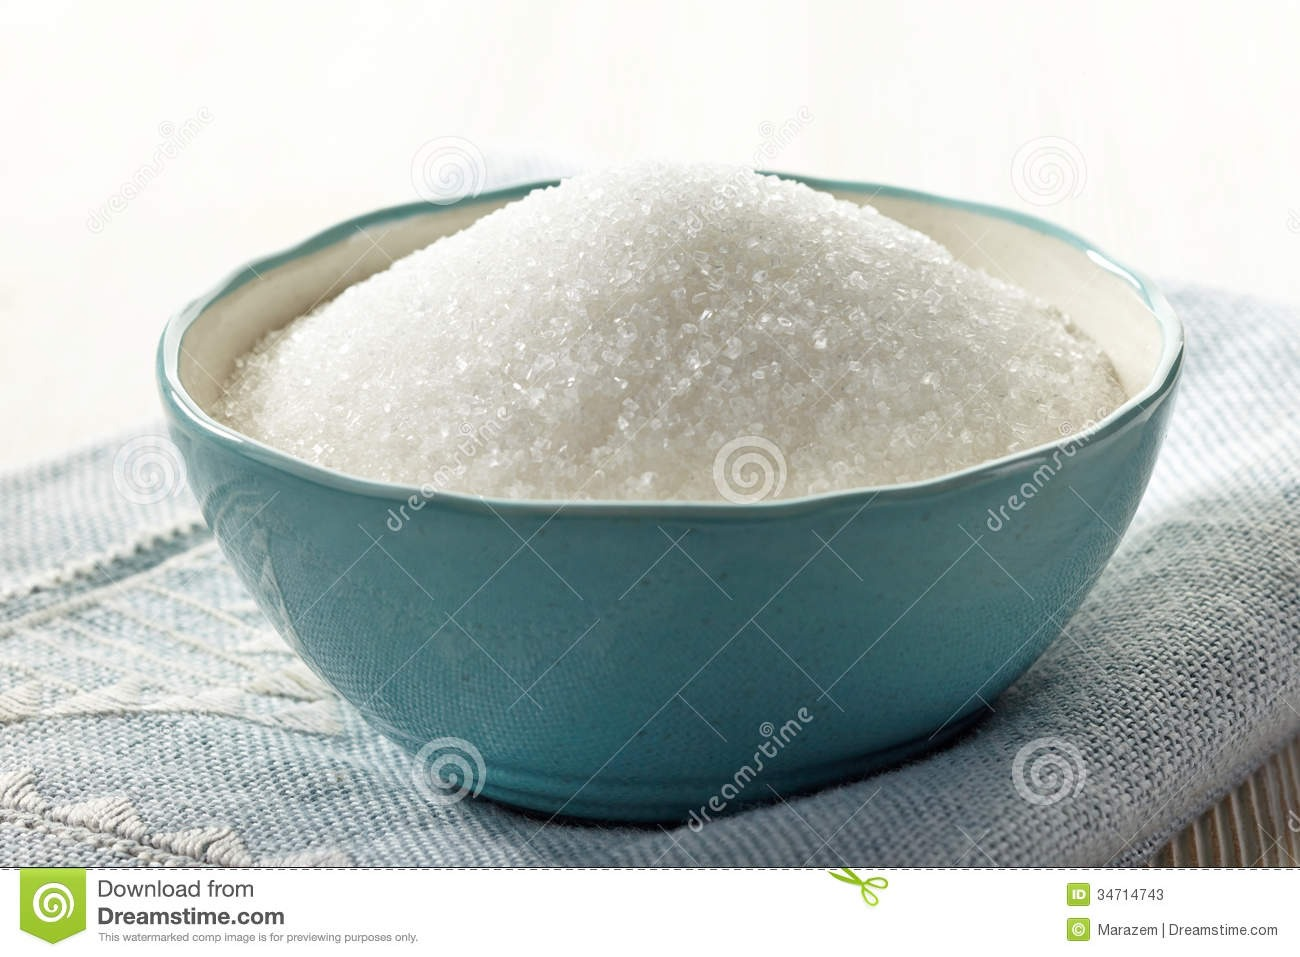 Put some sugar in a bowl. Not too much. Don't overfill it until it spills but add a good amount.